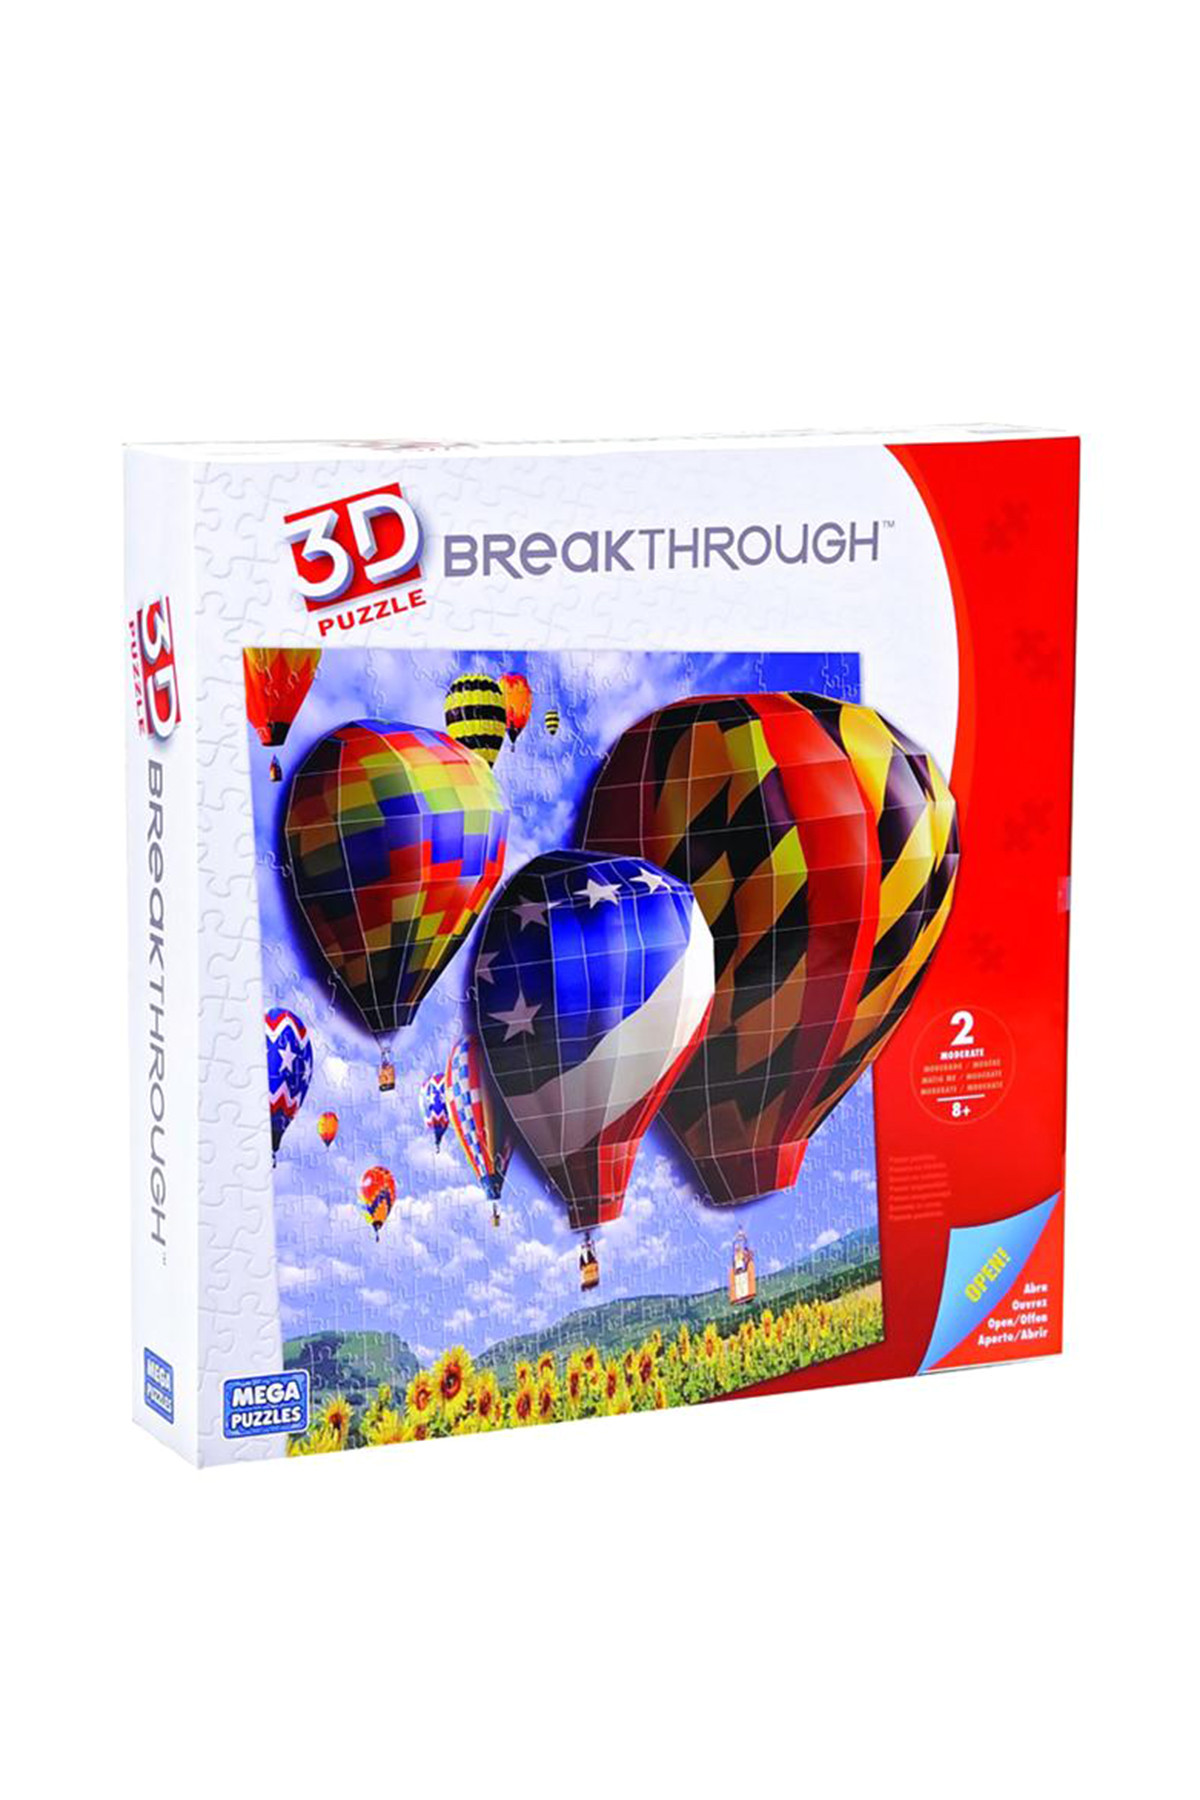 mega puzzles 200 parça 3d puzzle breakthrough balonlar 50669